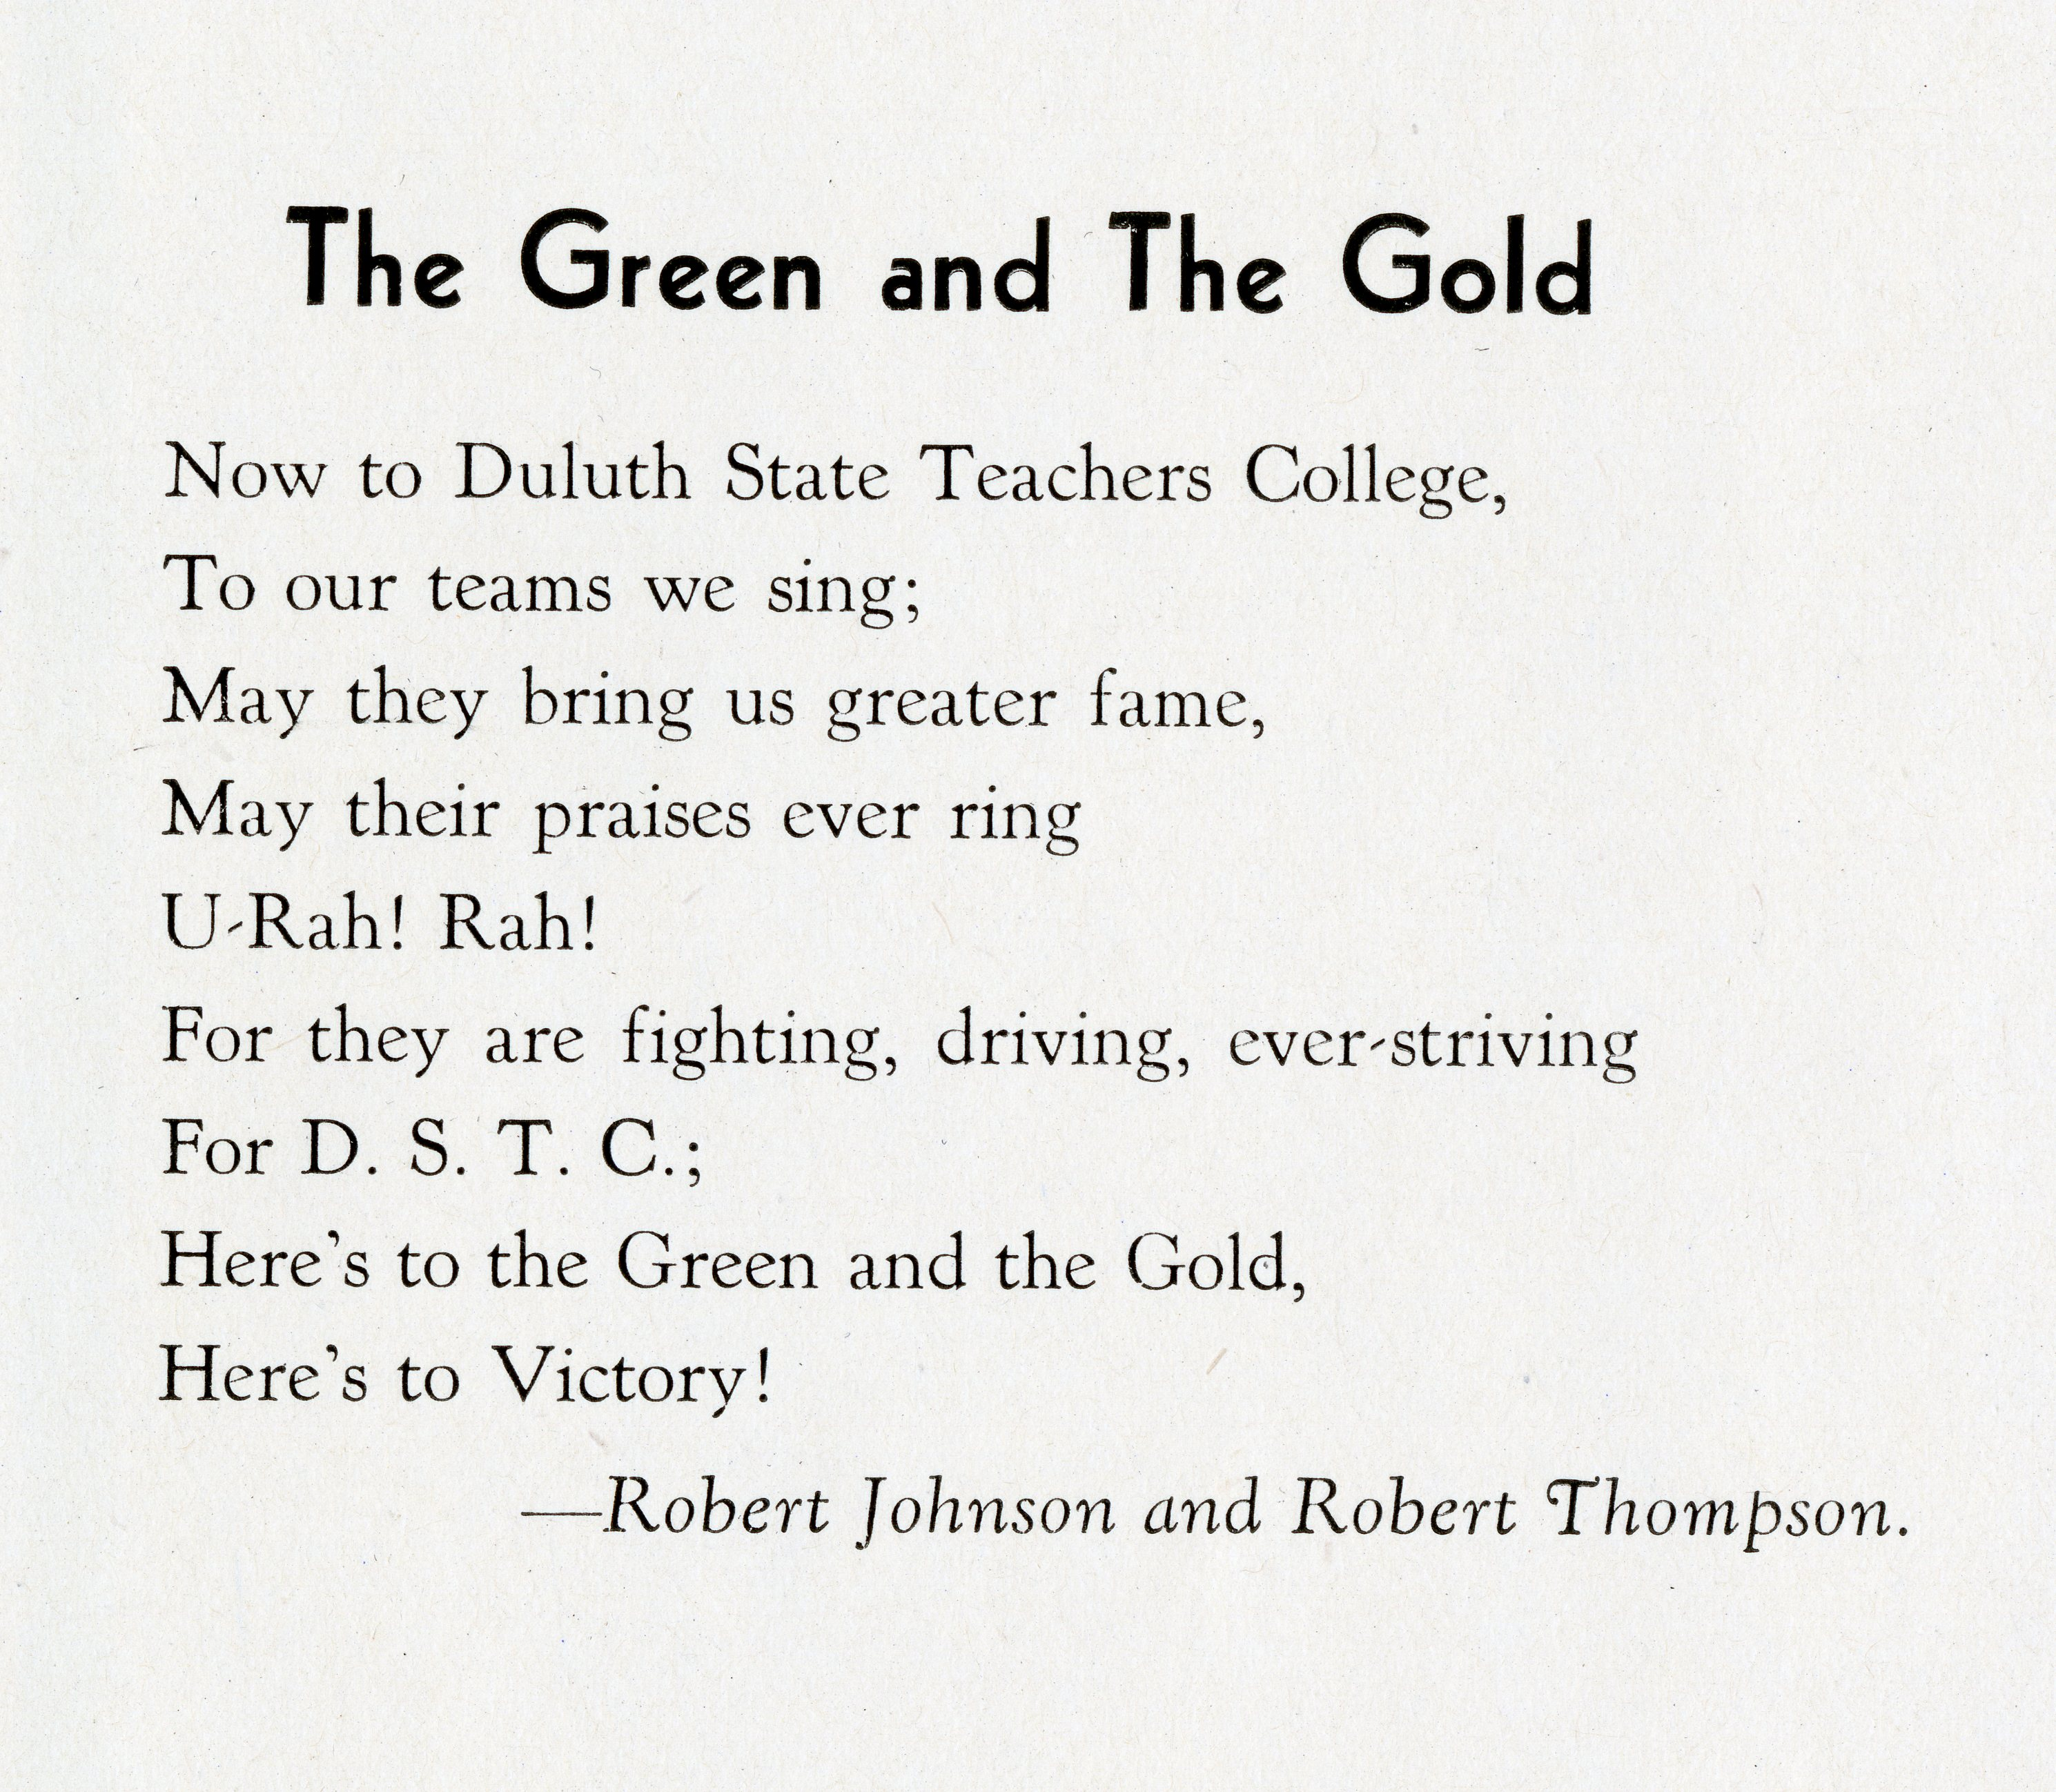 "Lyrics to ""The Green and The Gold."" Text reads: ""Now to Duluth State Teachers College, / To our teams we sing; / May they bring us greater fame, / May their praises ever ring / U-Rah! Rah! / For they are fighting, driving, ever-striving / For D. S. T. C. / Here's to the Green and the Gold, / Here's to Victory!"" Lyrics are credited to Robert Johnson and Robert Thompson."